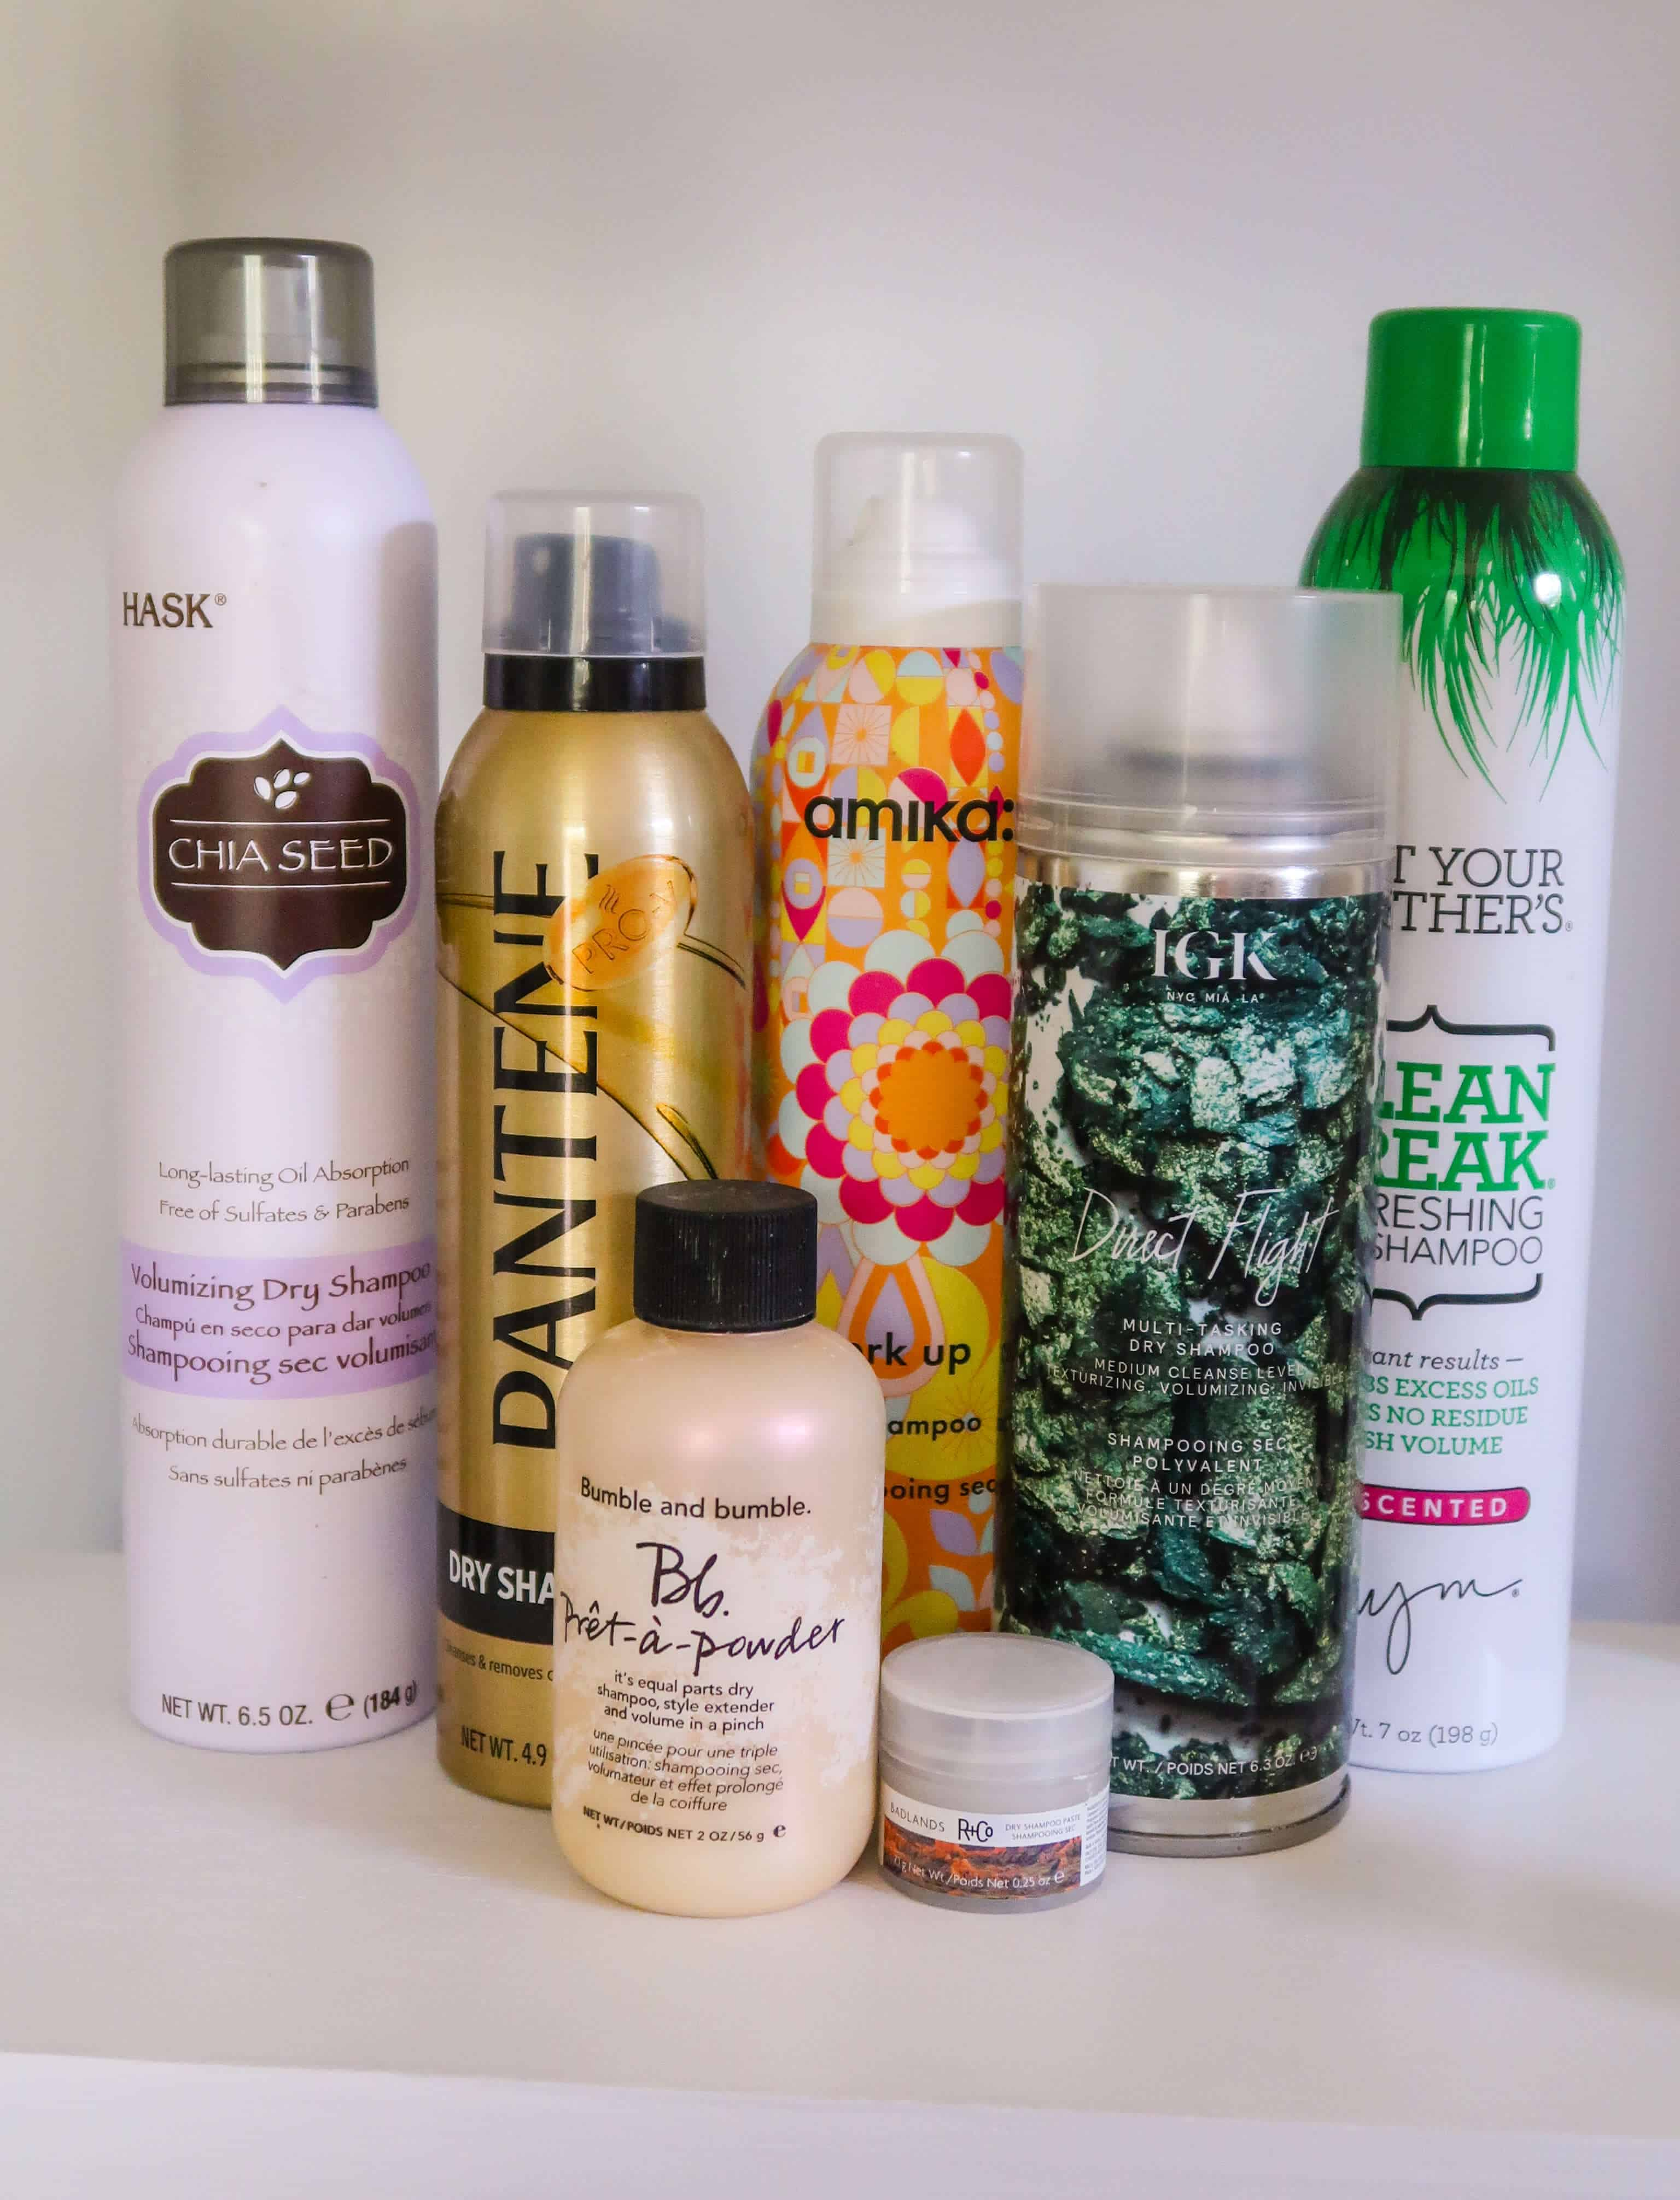 Trying All The Dry Shampoo: A Comprehensive Review - Savee